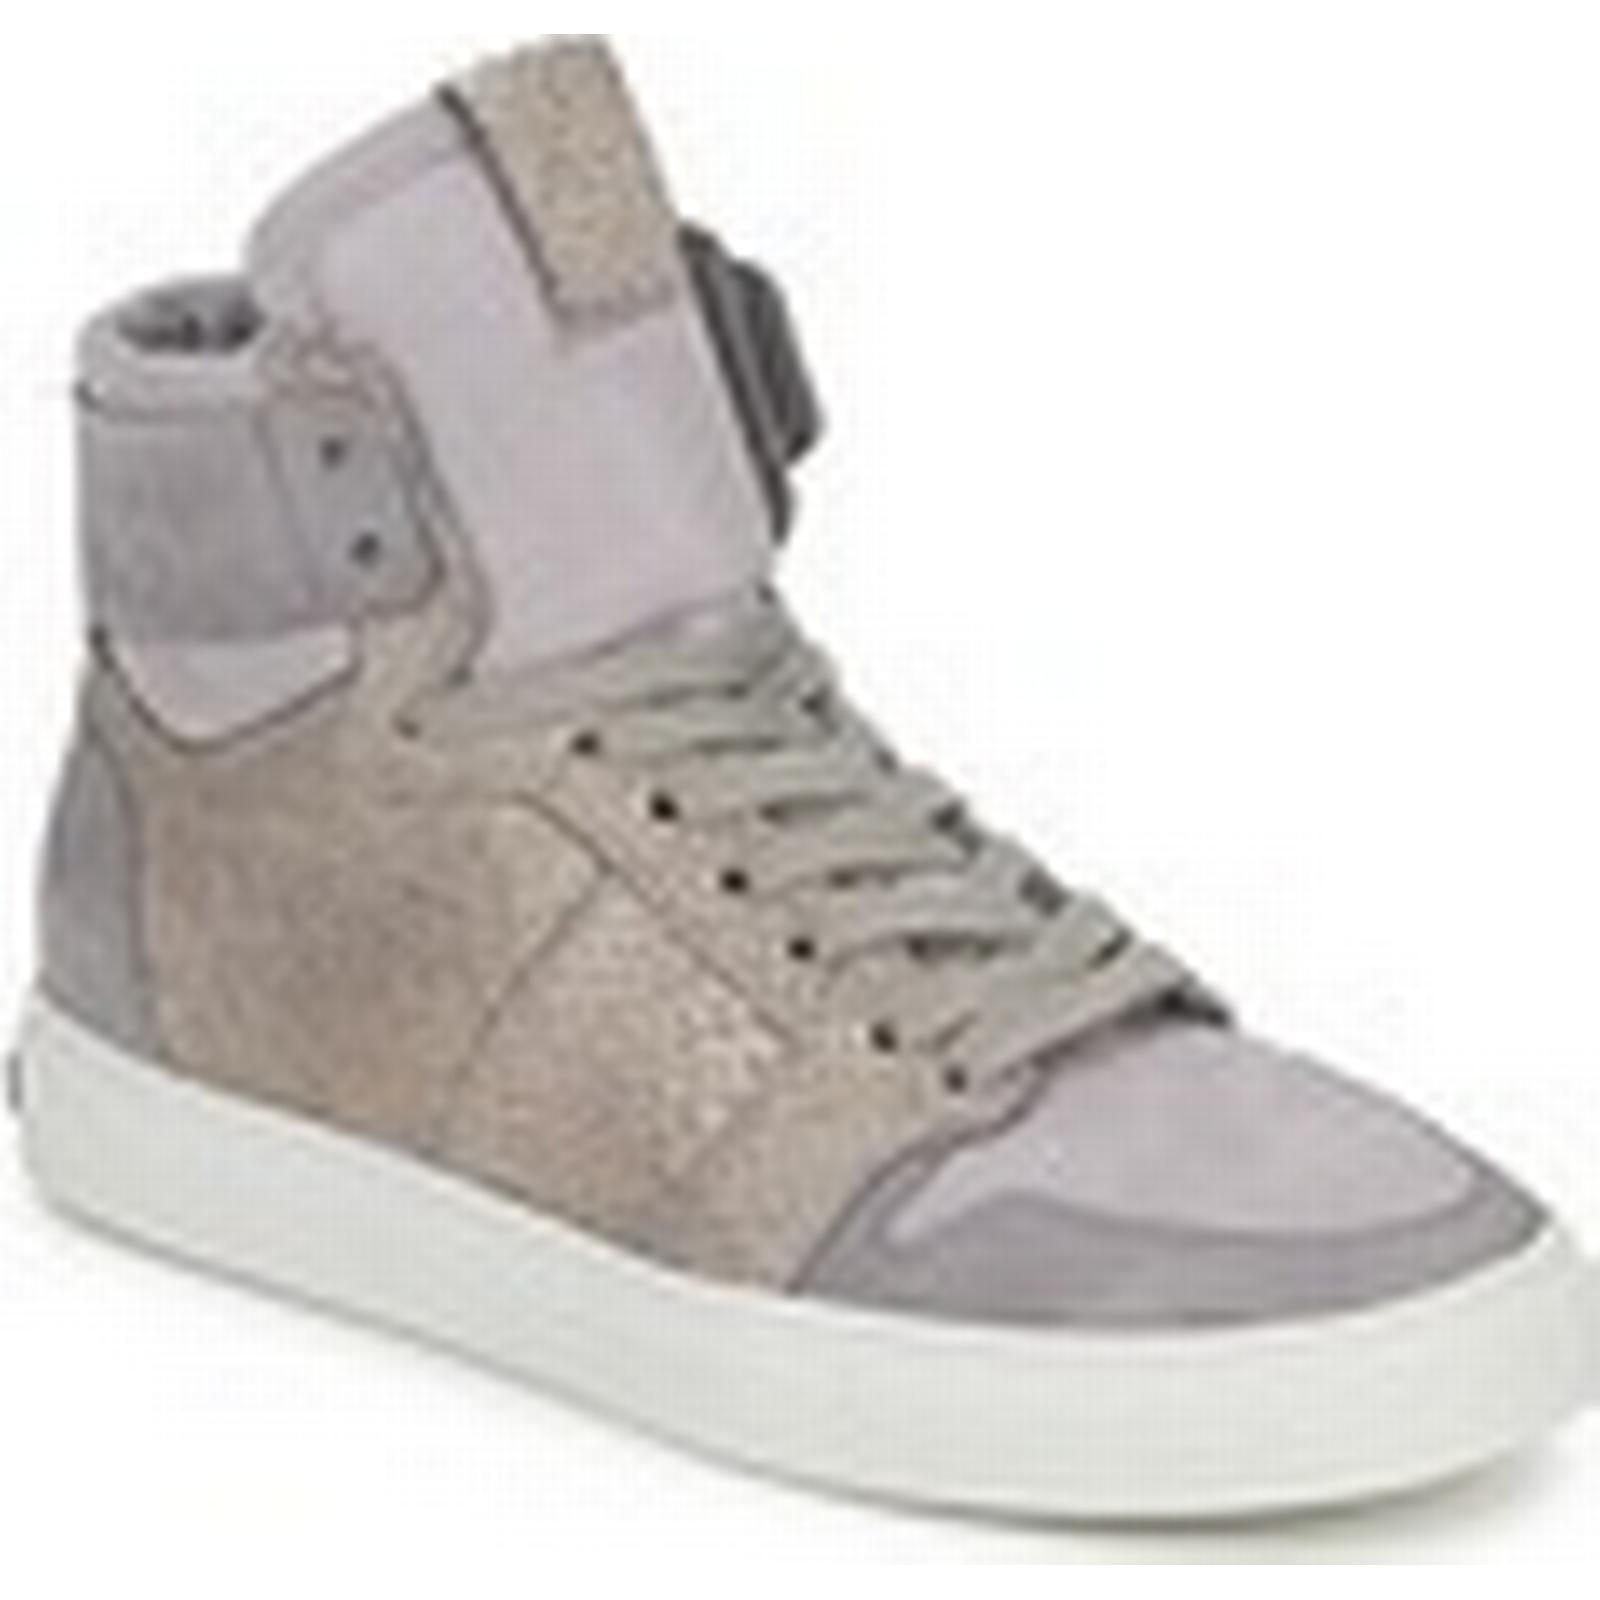 Kennel + Schmenger  ATINA  women's Shoes Shoes women's (High-top Trainers) in Grey 4c7b4c